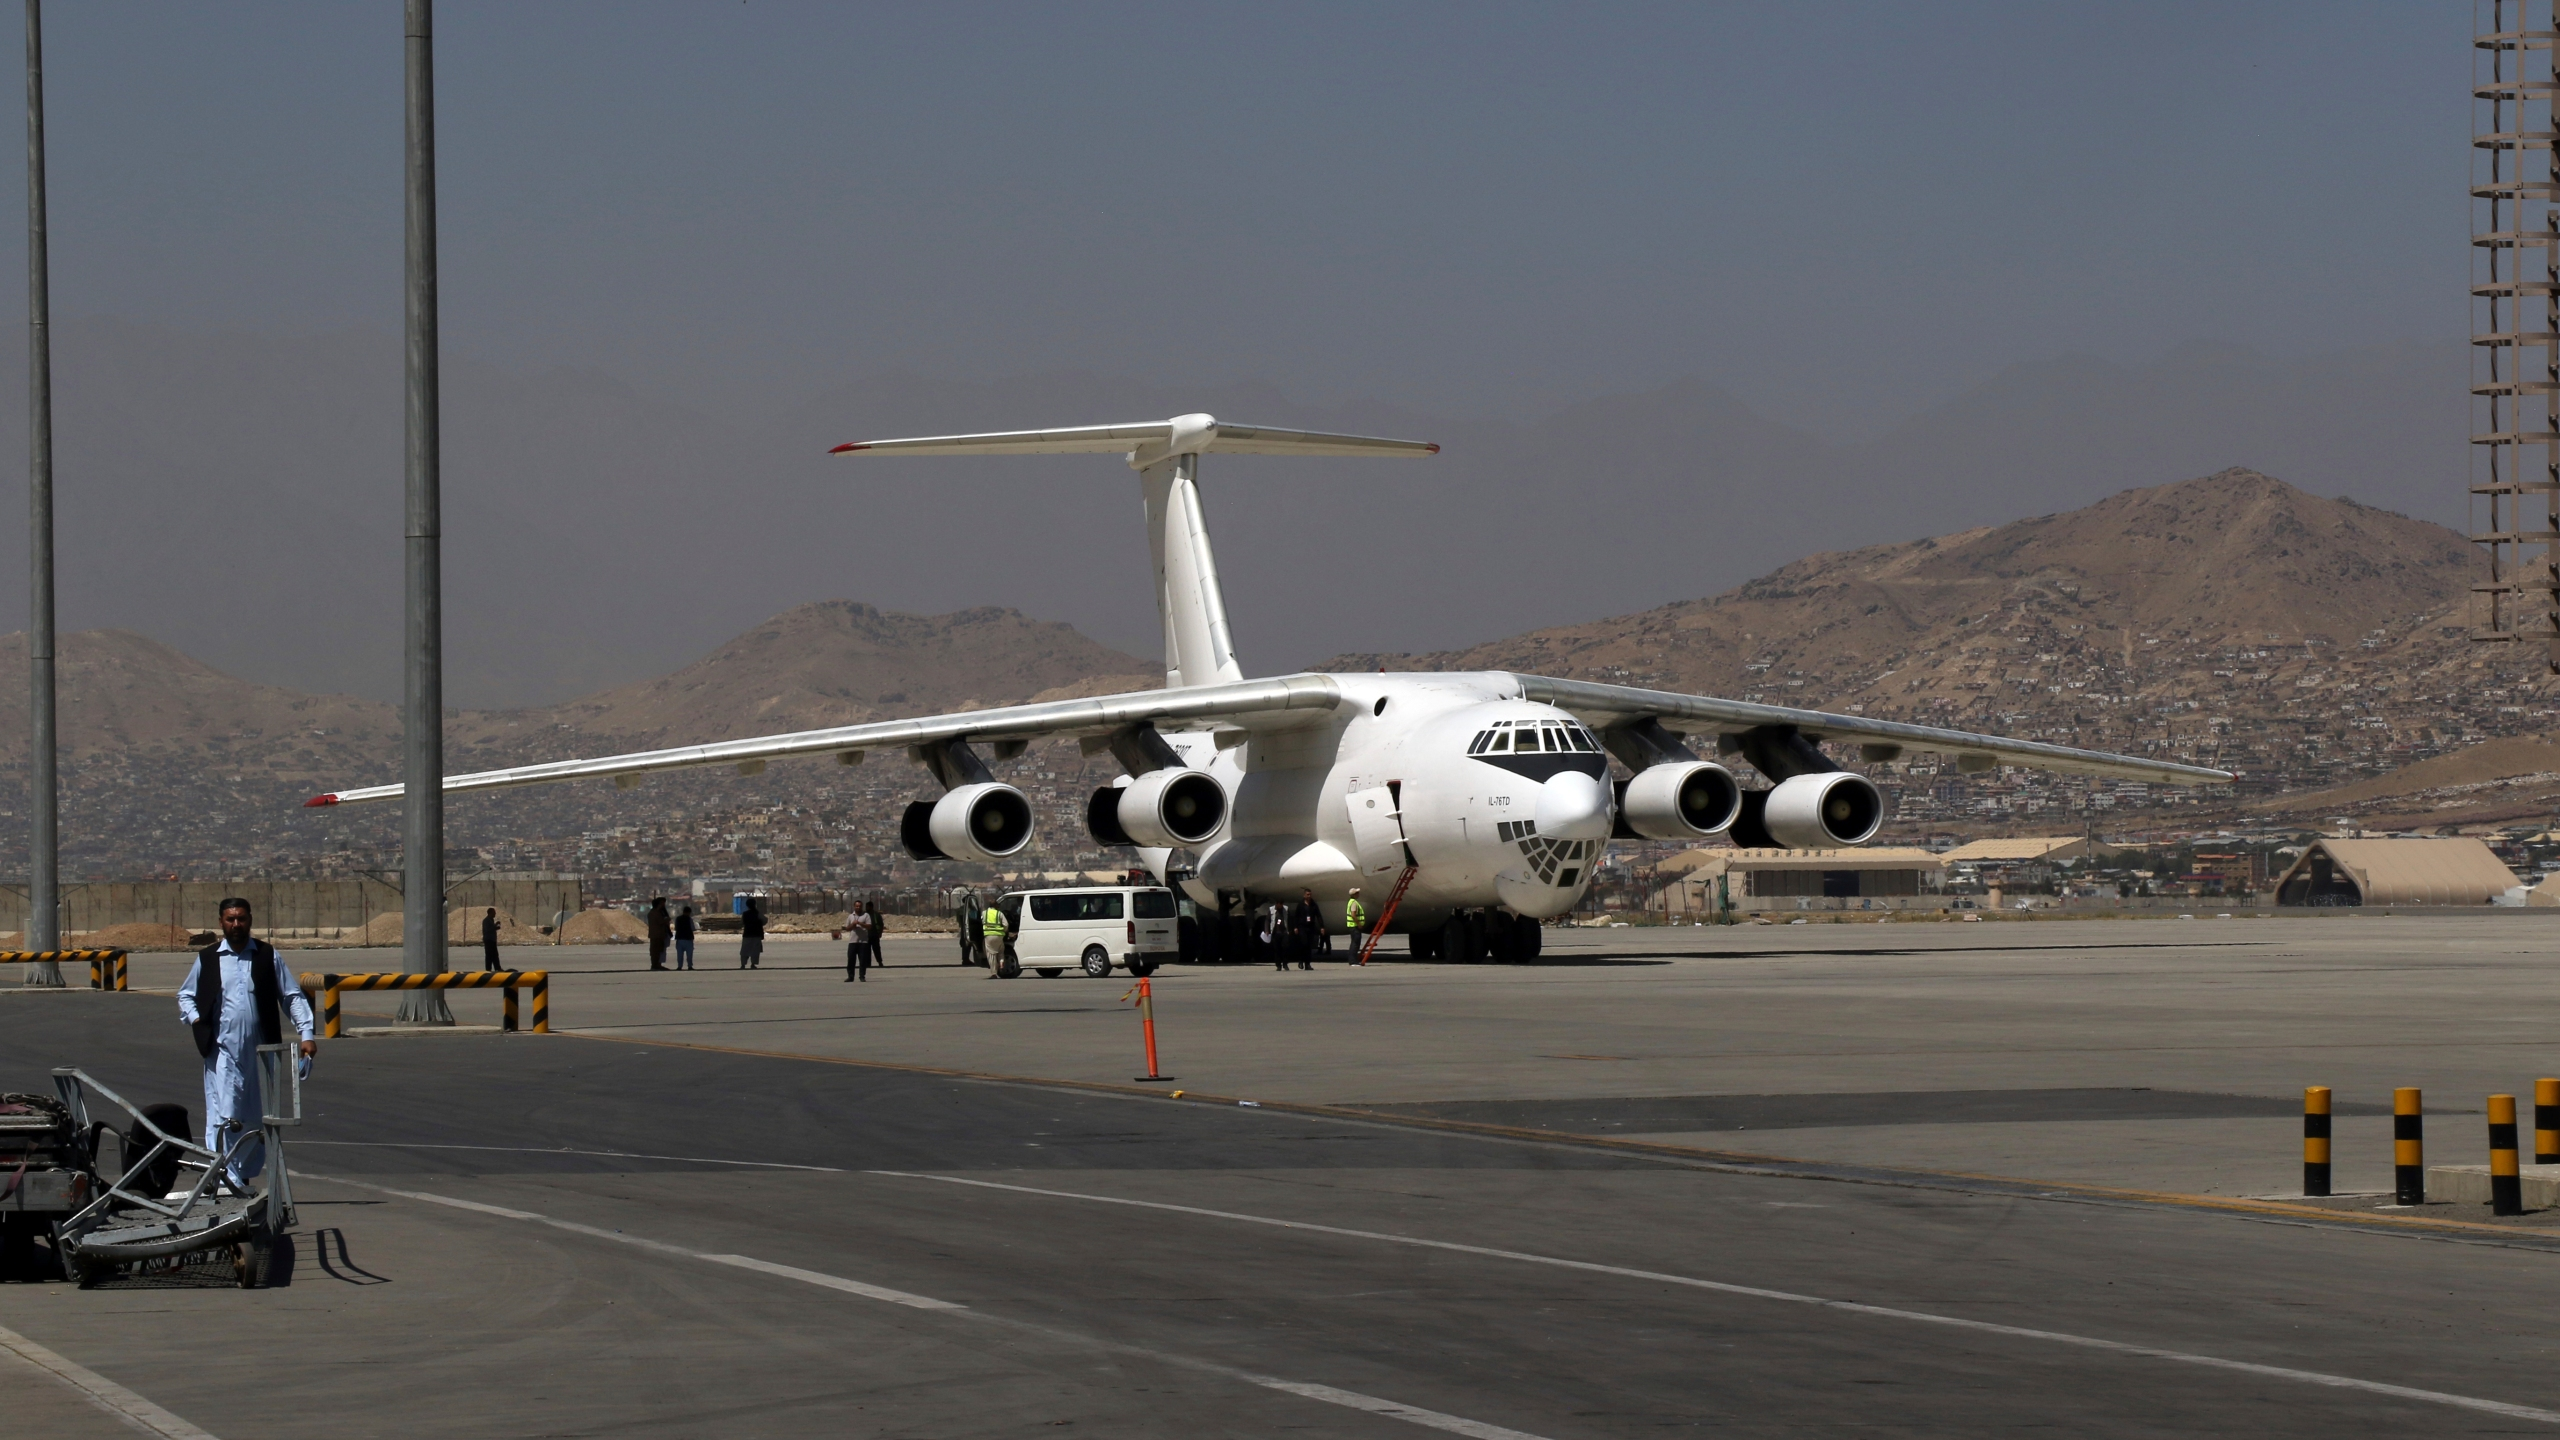 A plane is parked at Hamid Karzai International Airport in Kabul, Afghanistan, Sunday, Sept. 5, 2021. Some domestic flights have resumed at Kabul's airport, with the state-run Ariana Afghan Airlines operating flights to three provinces. (AP Photo/Wali Sabawoon)